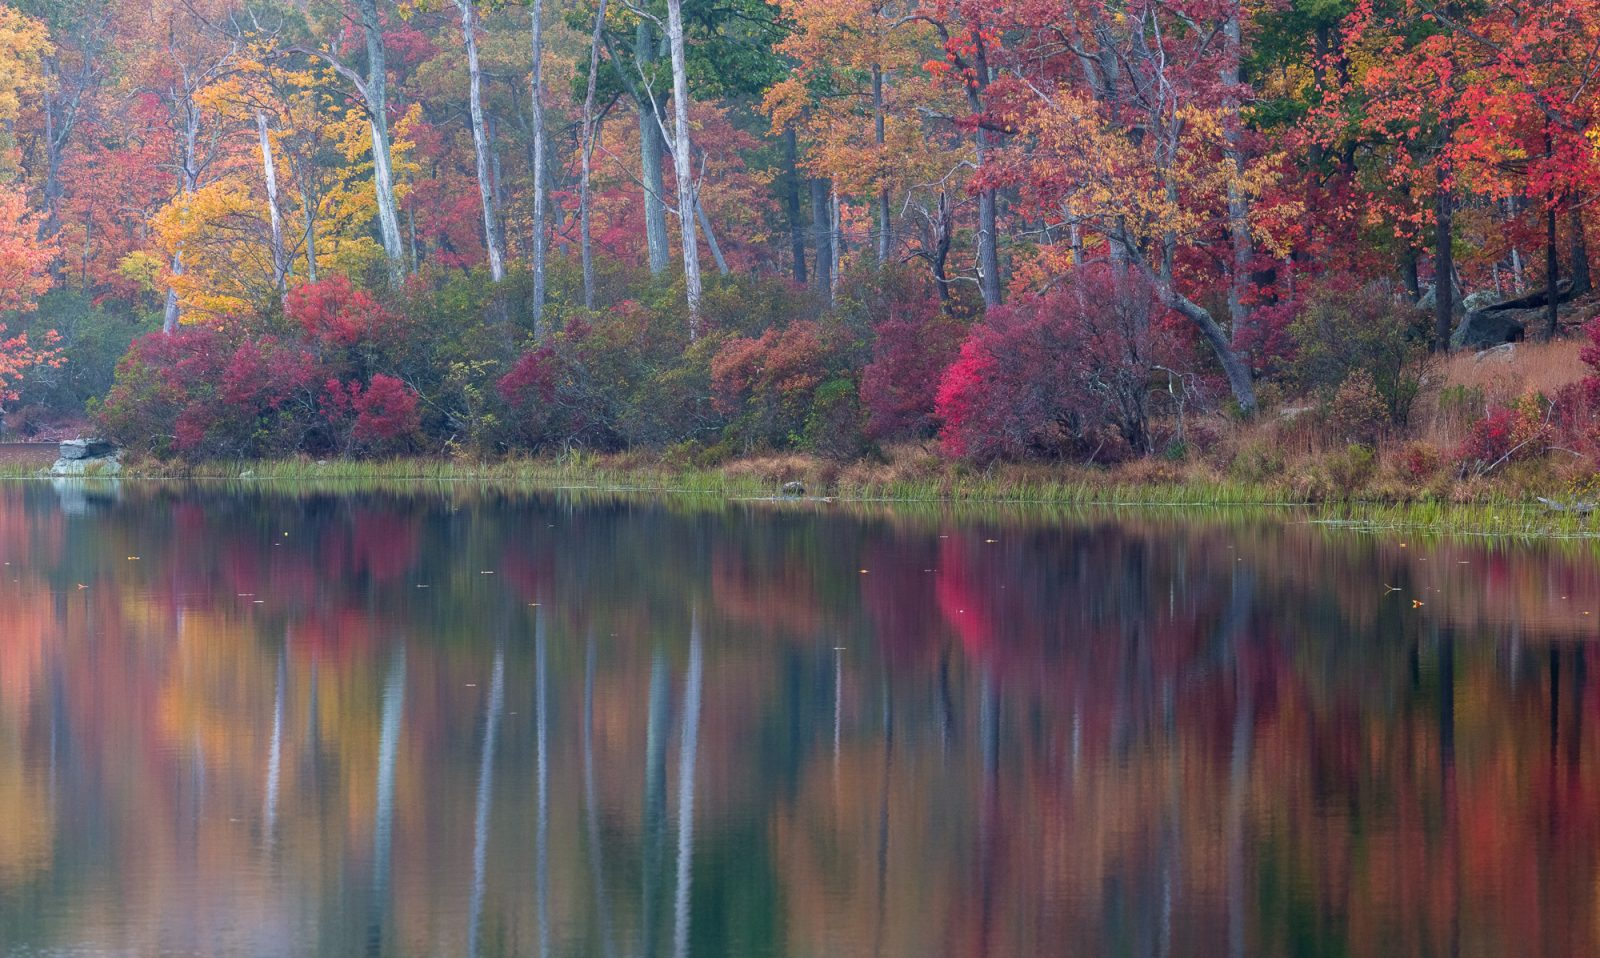 Reflections of the Fall